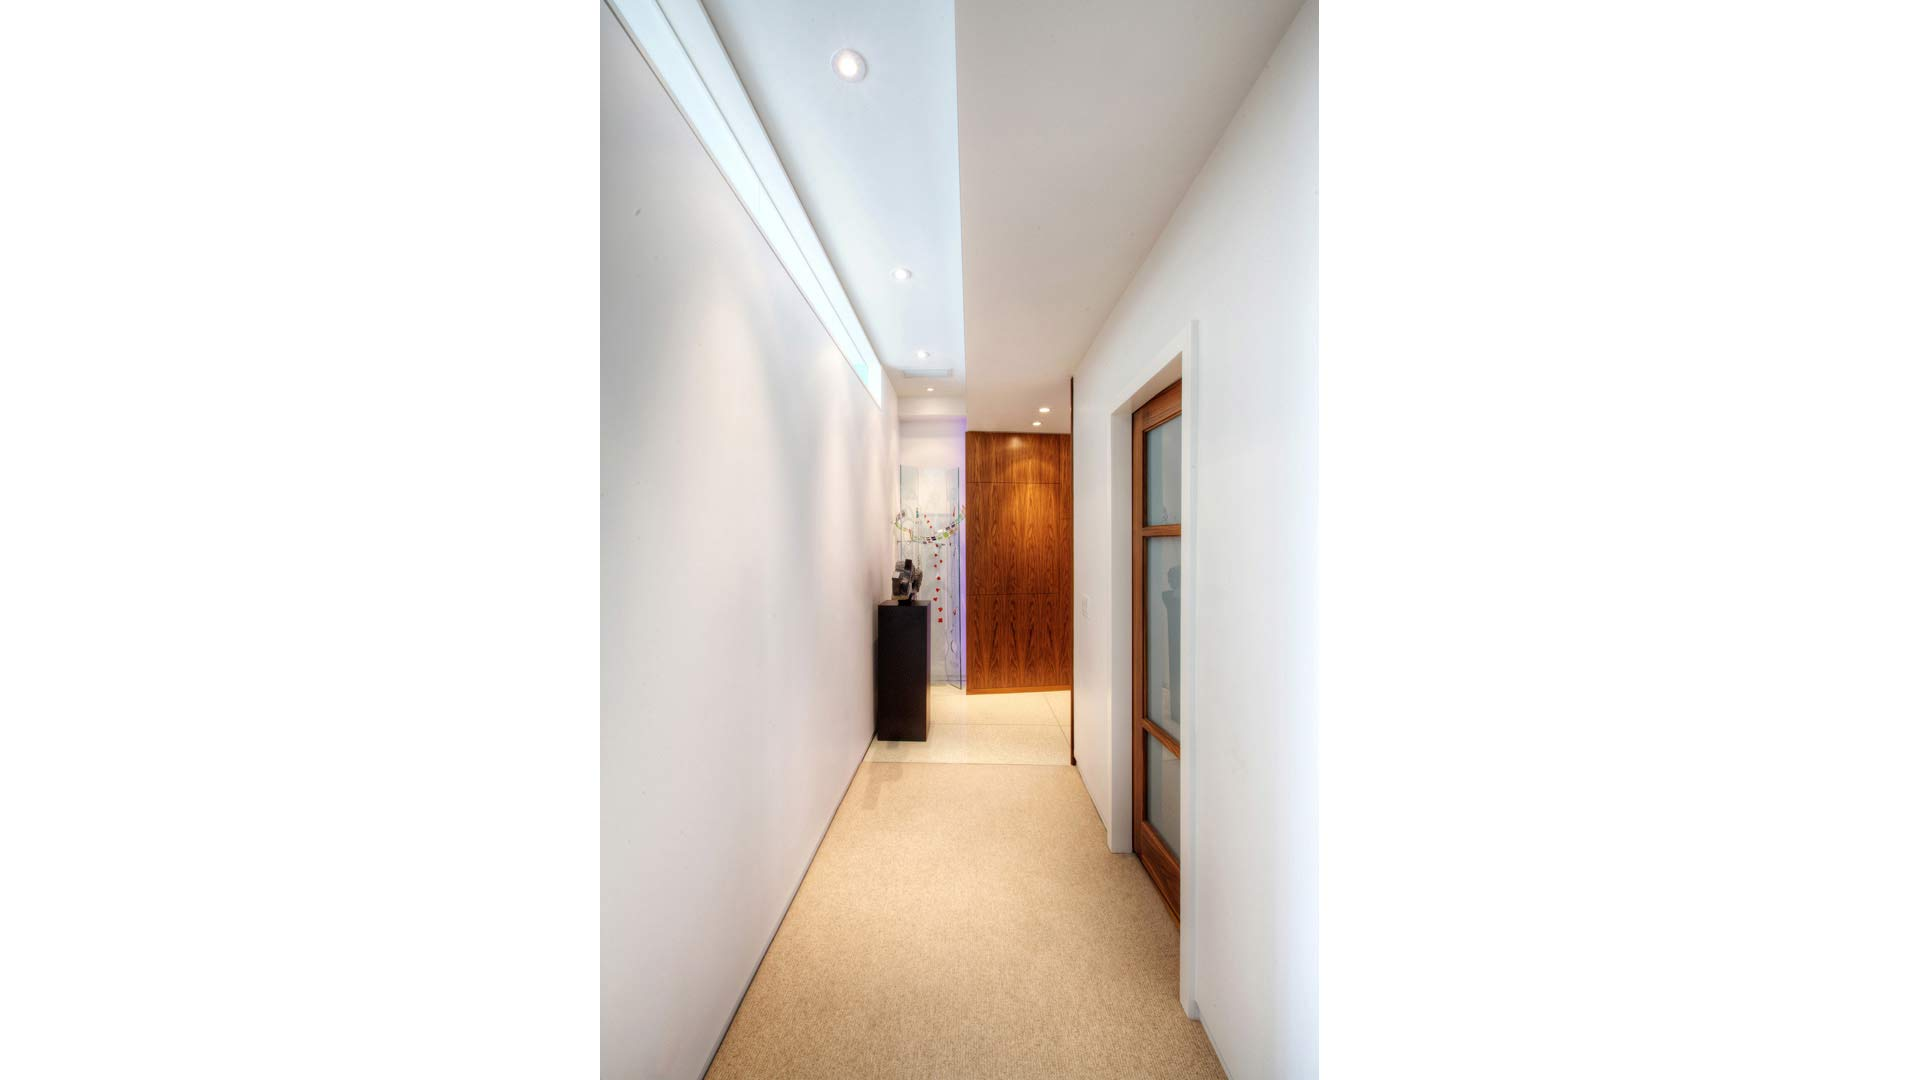 Urban Mid Rise Flat - Bedroom Hallway - HAUS Architecture, Christopher Short, Indianapolis Architect